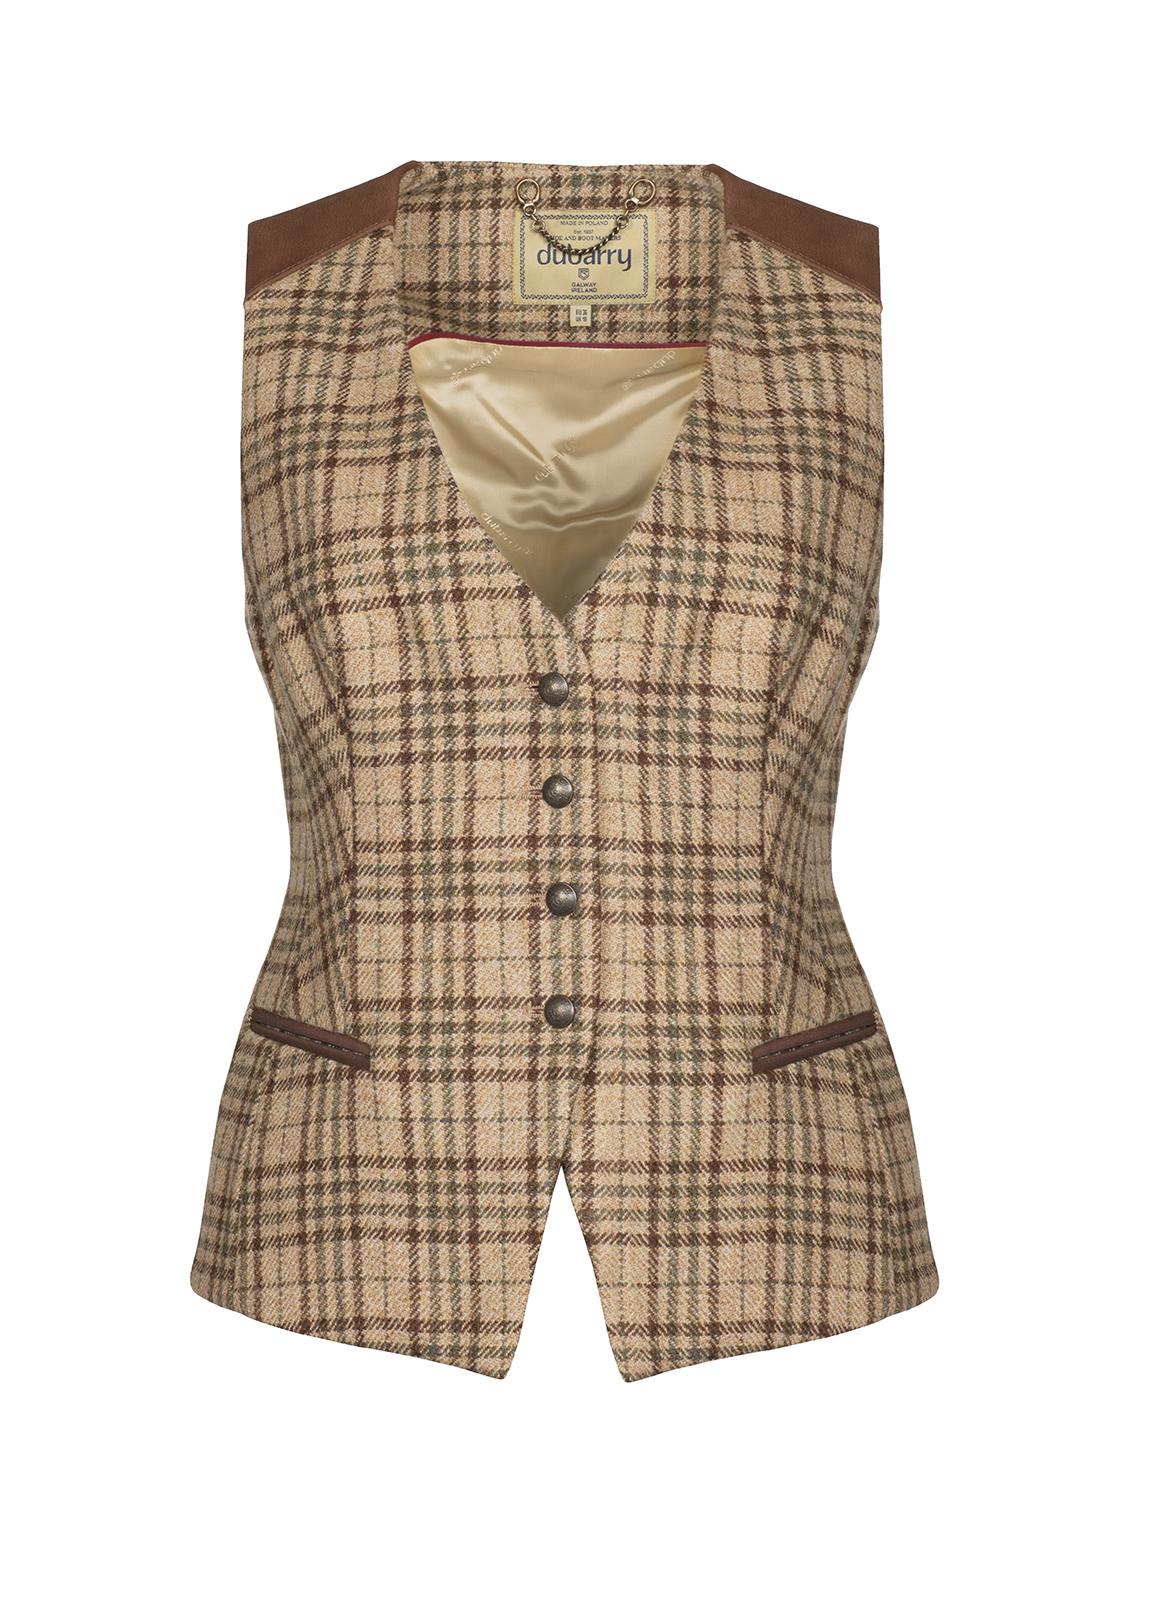 Dubarry_ Daisy Fitted Tweed Waistcoat - Pebble_Image_2